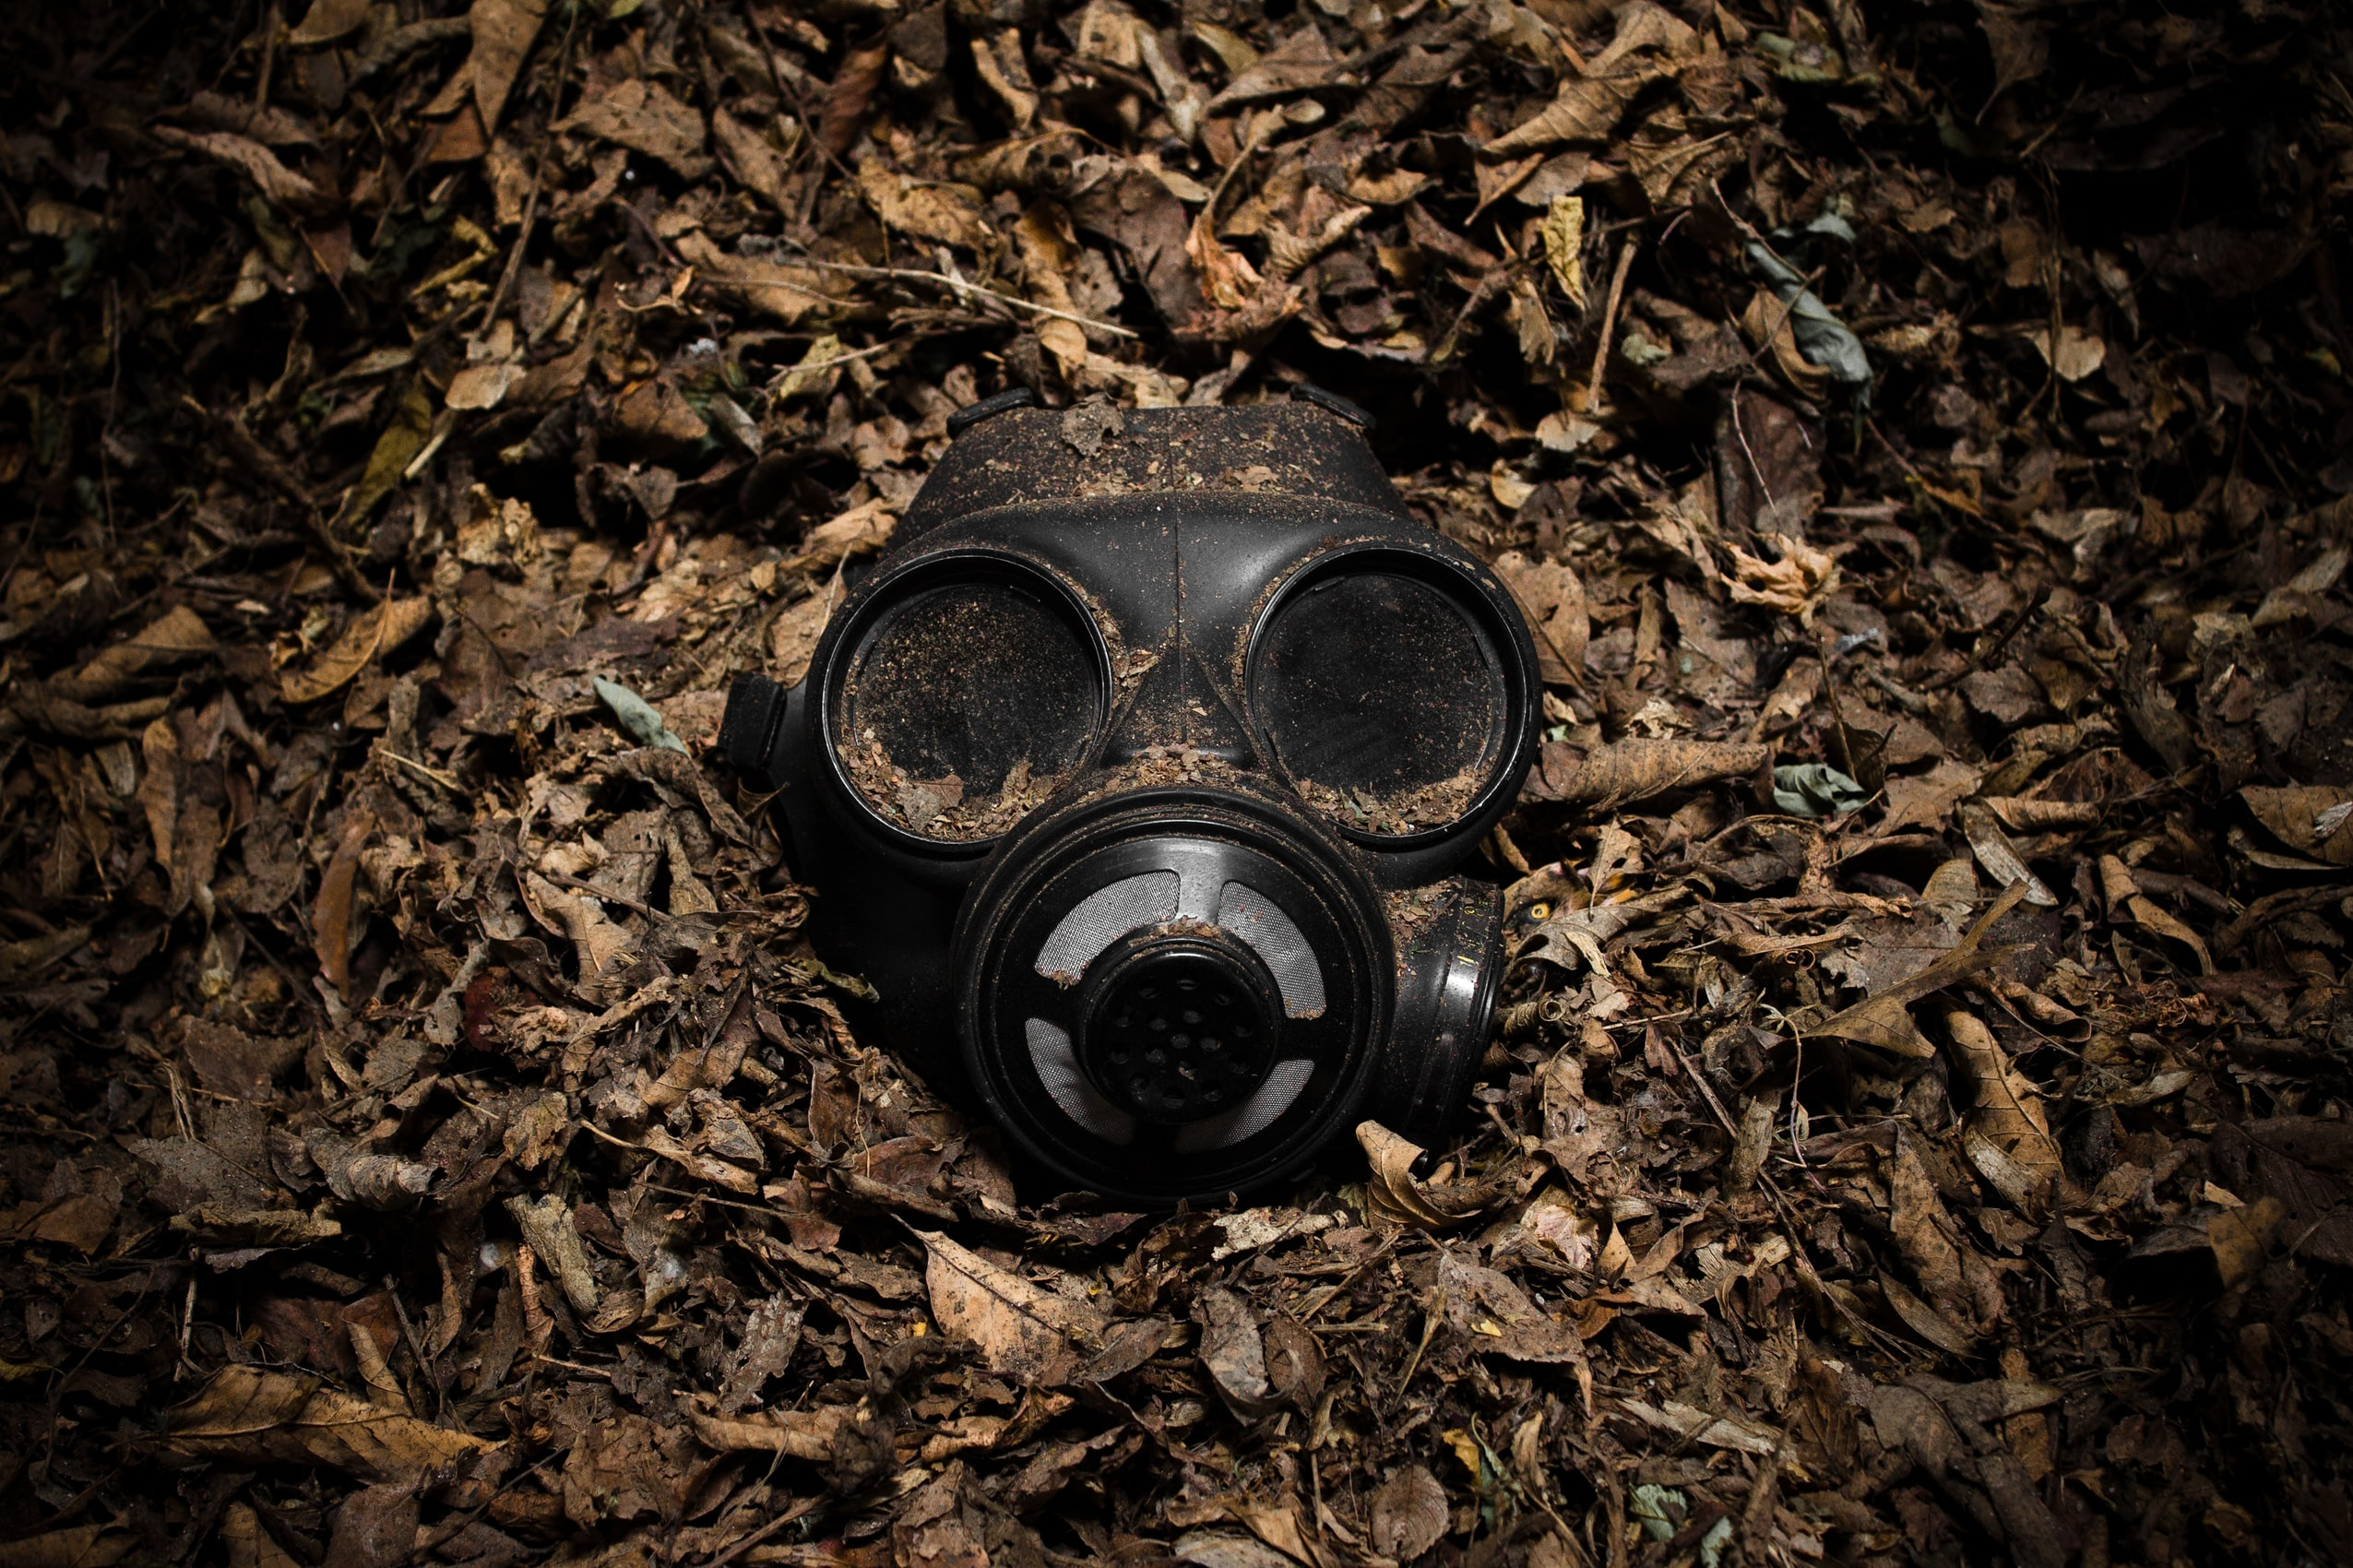 Gas mask - wars because of climate change